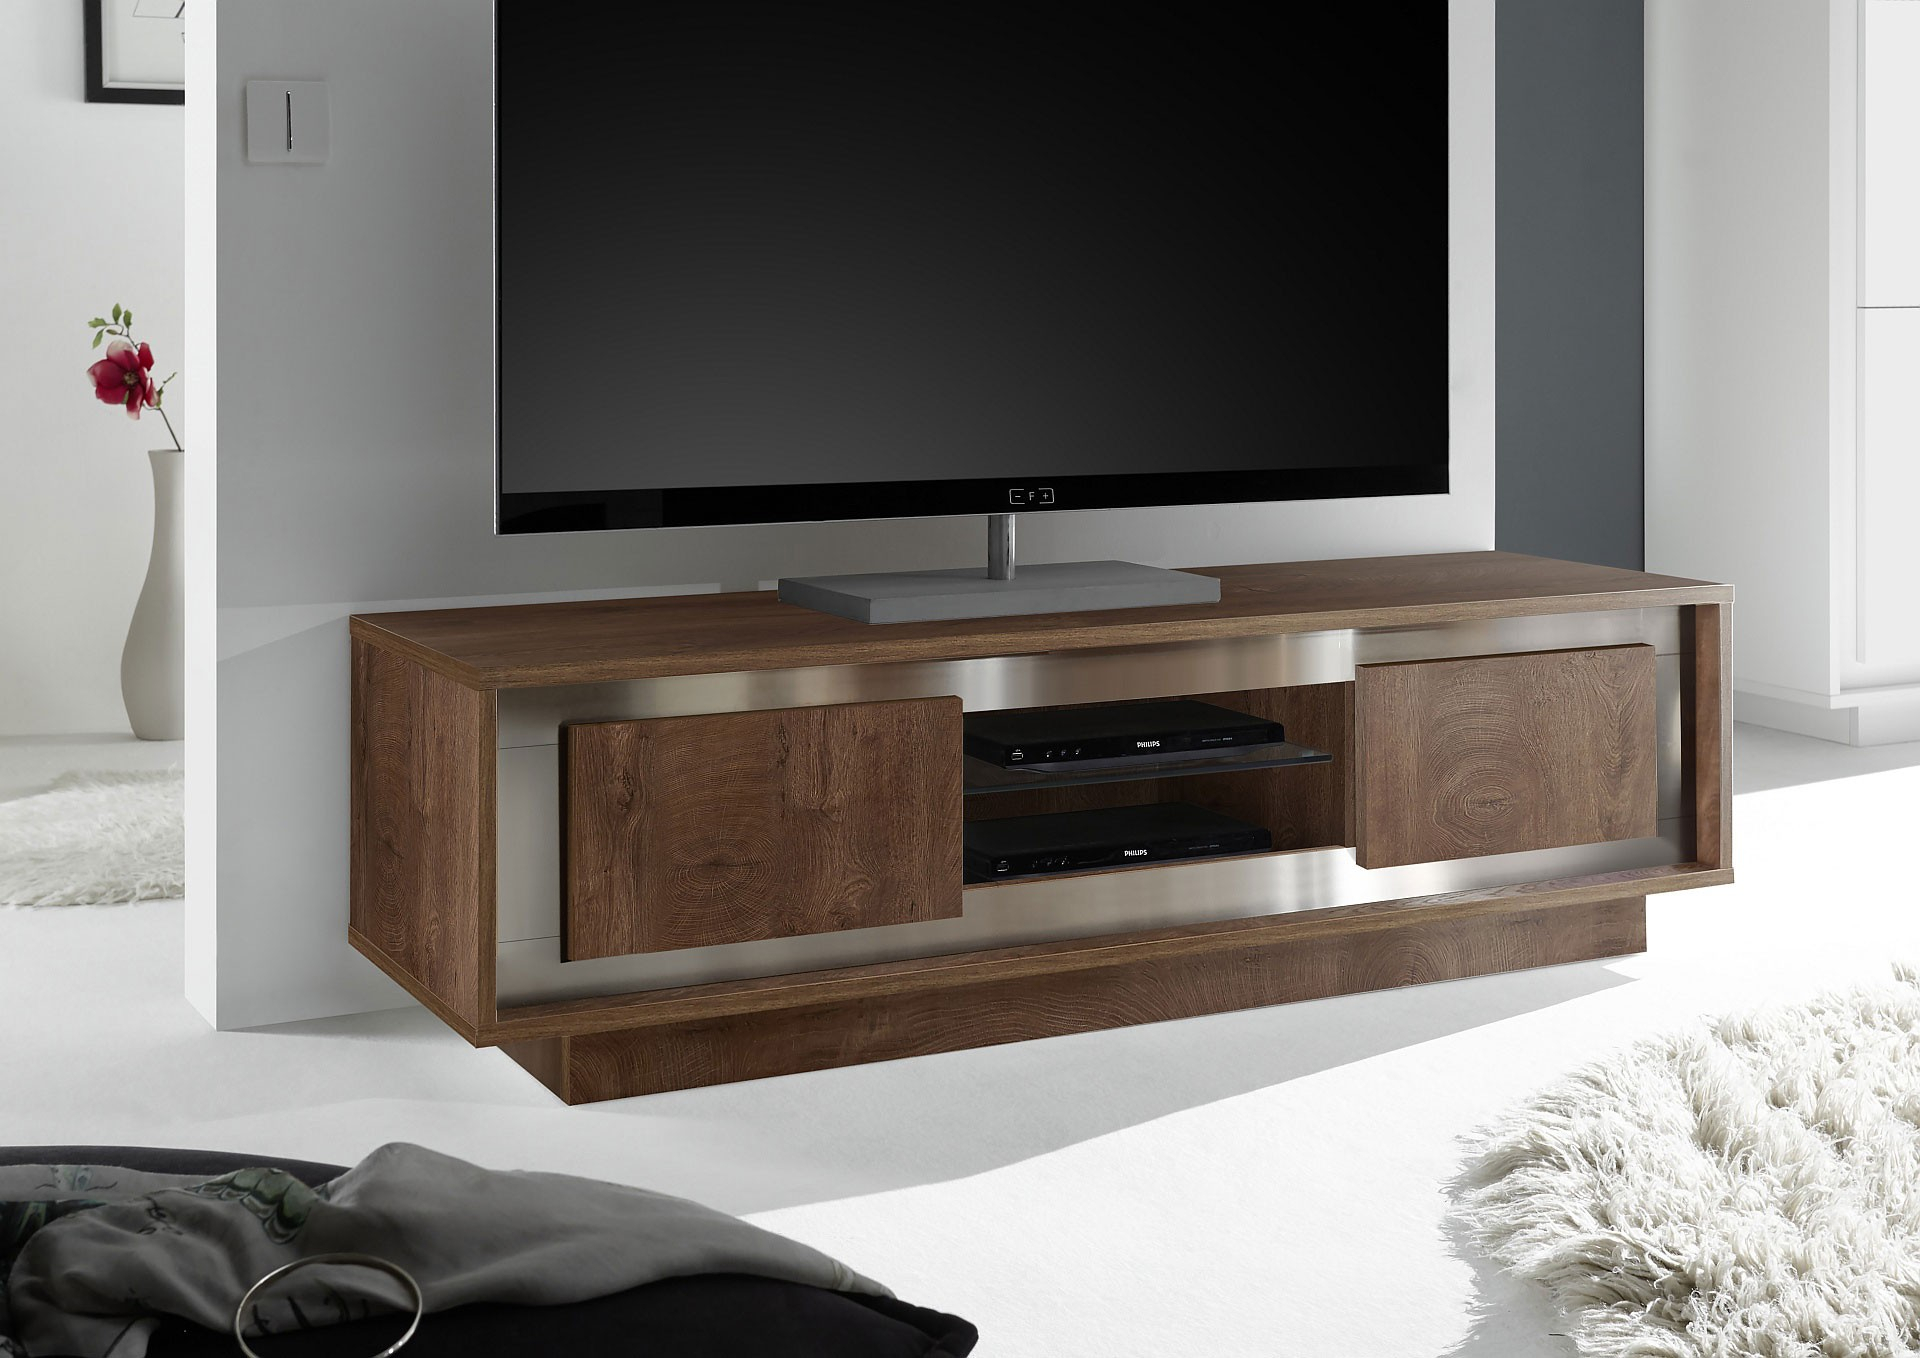 Contemporary Styled Tv Console Made In Italy Palo Alto Pertaining To Most Recent Samira Tv Stands (View 4 of 11)